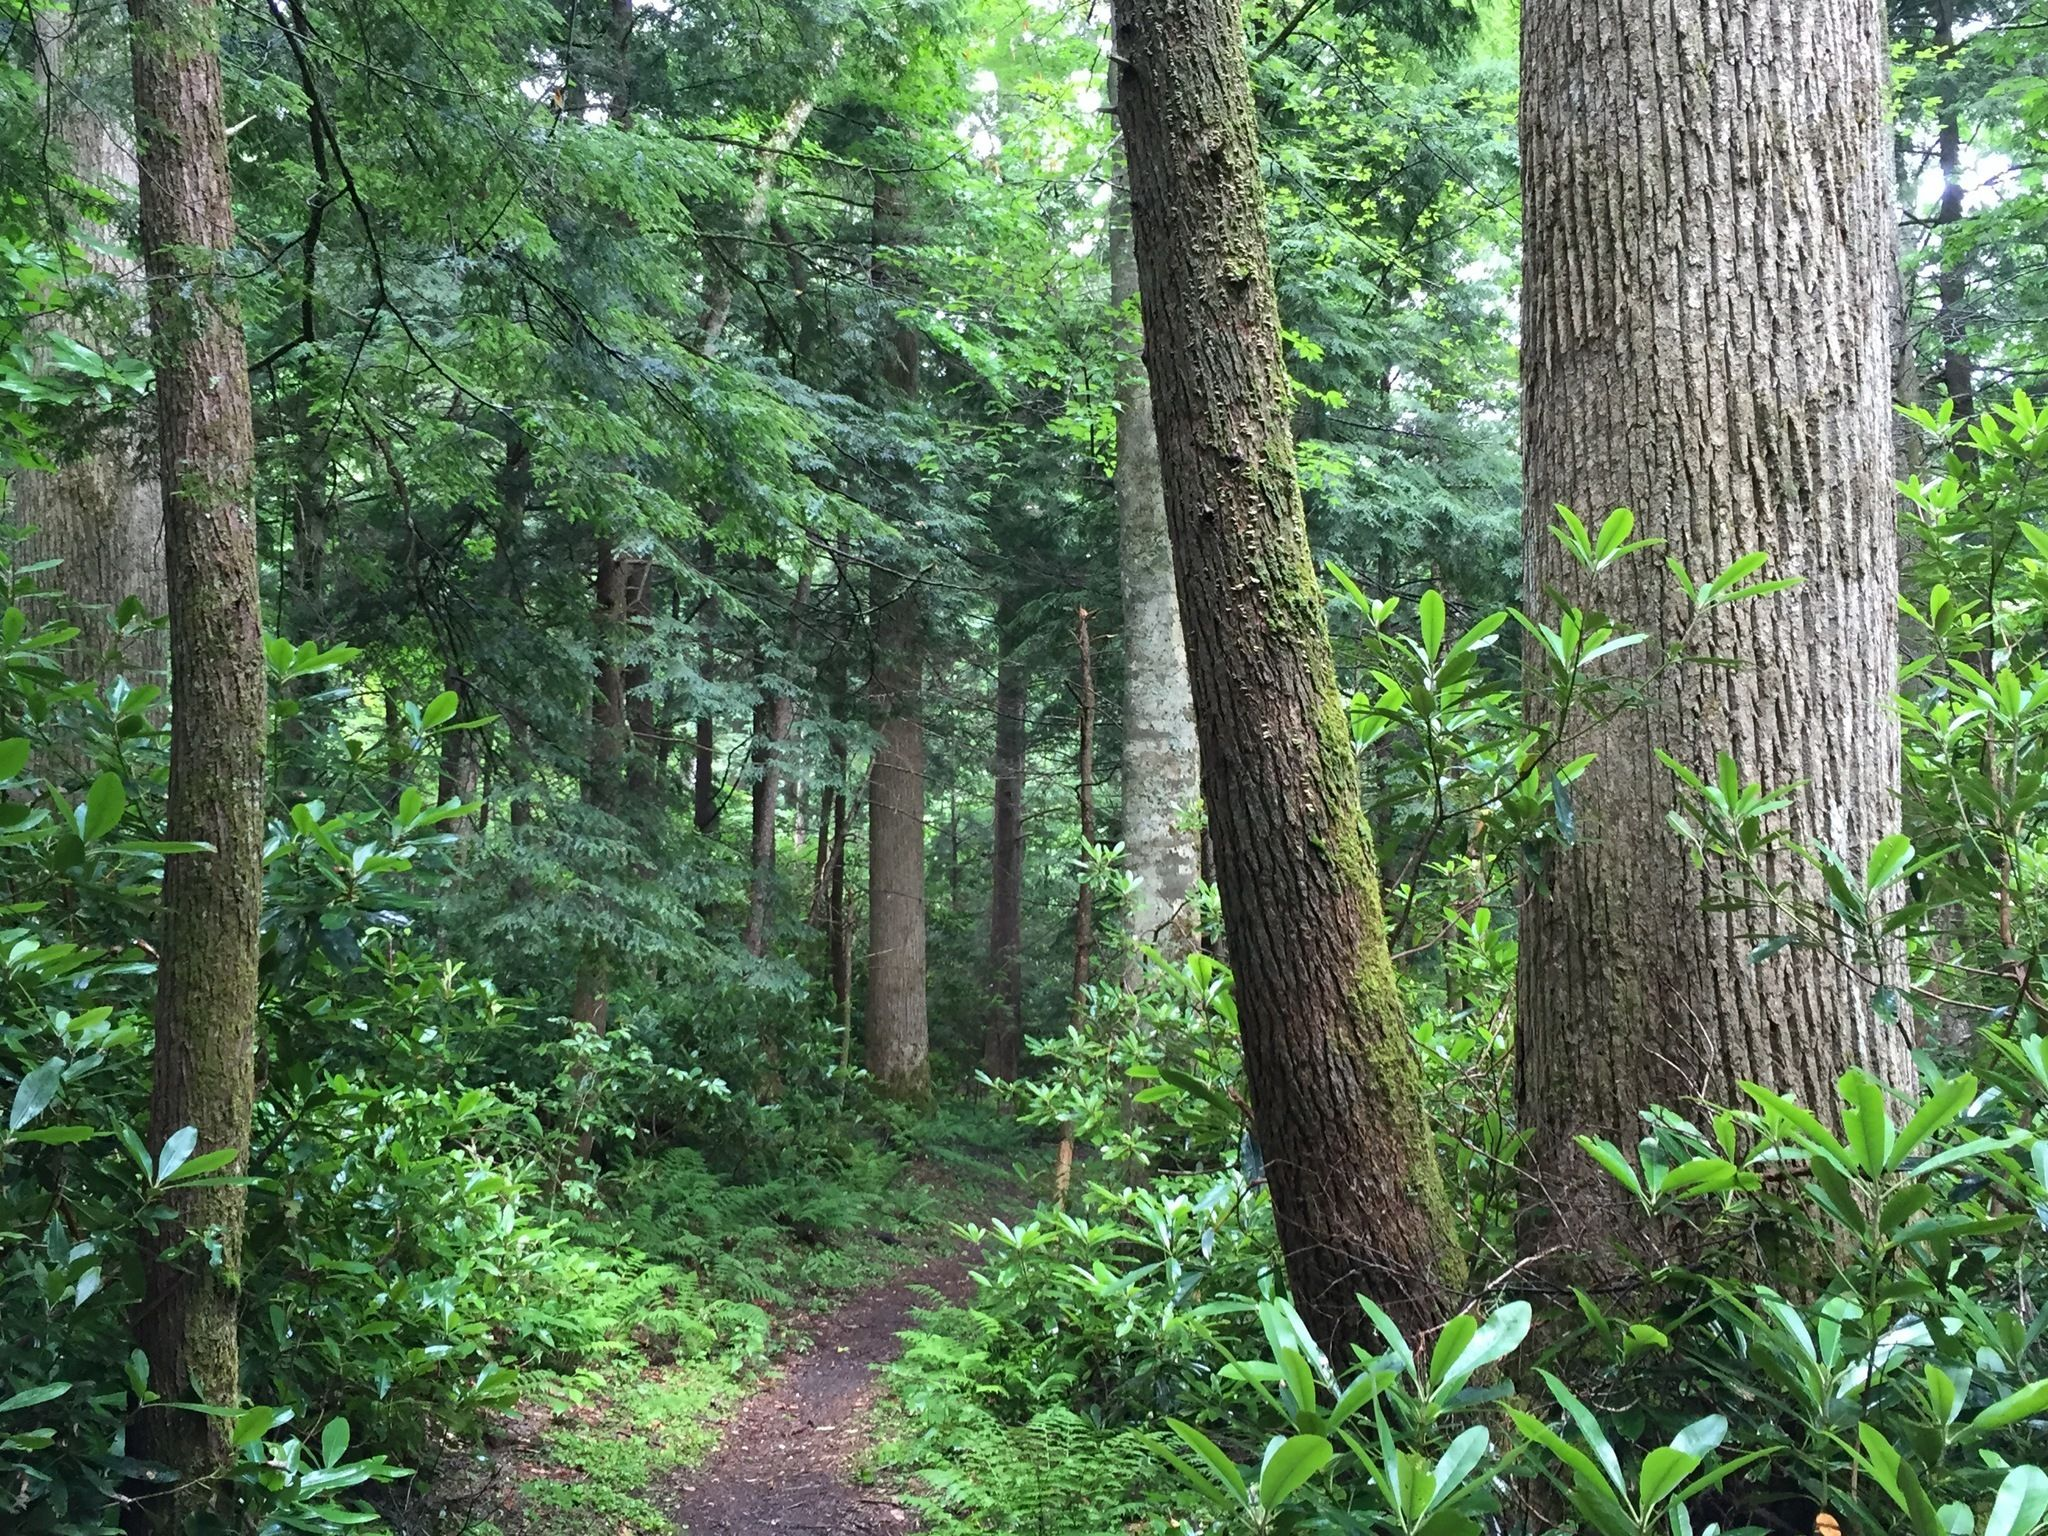 This Remote Hike Through The Great Smoky Mountains In Tennessee Winds Through Miles Of Remote, Old Growth Forest